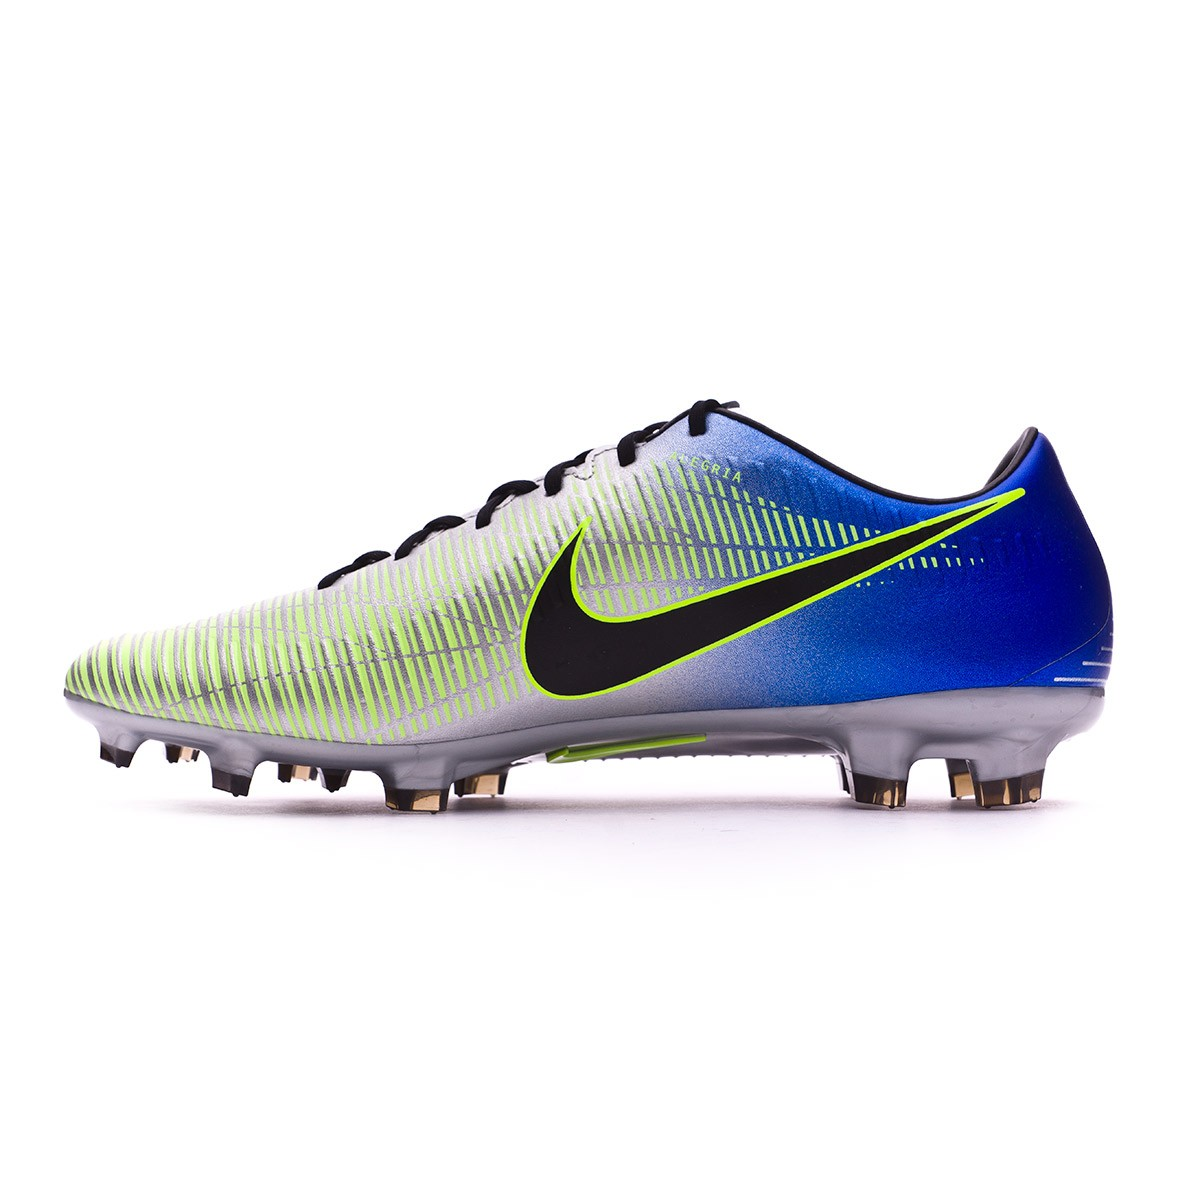 Boot Nike Mercurial Veloce III FG Neymar Racer blue-Black-Chrome ... 1ef744c378615